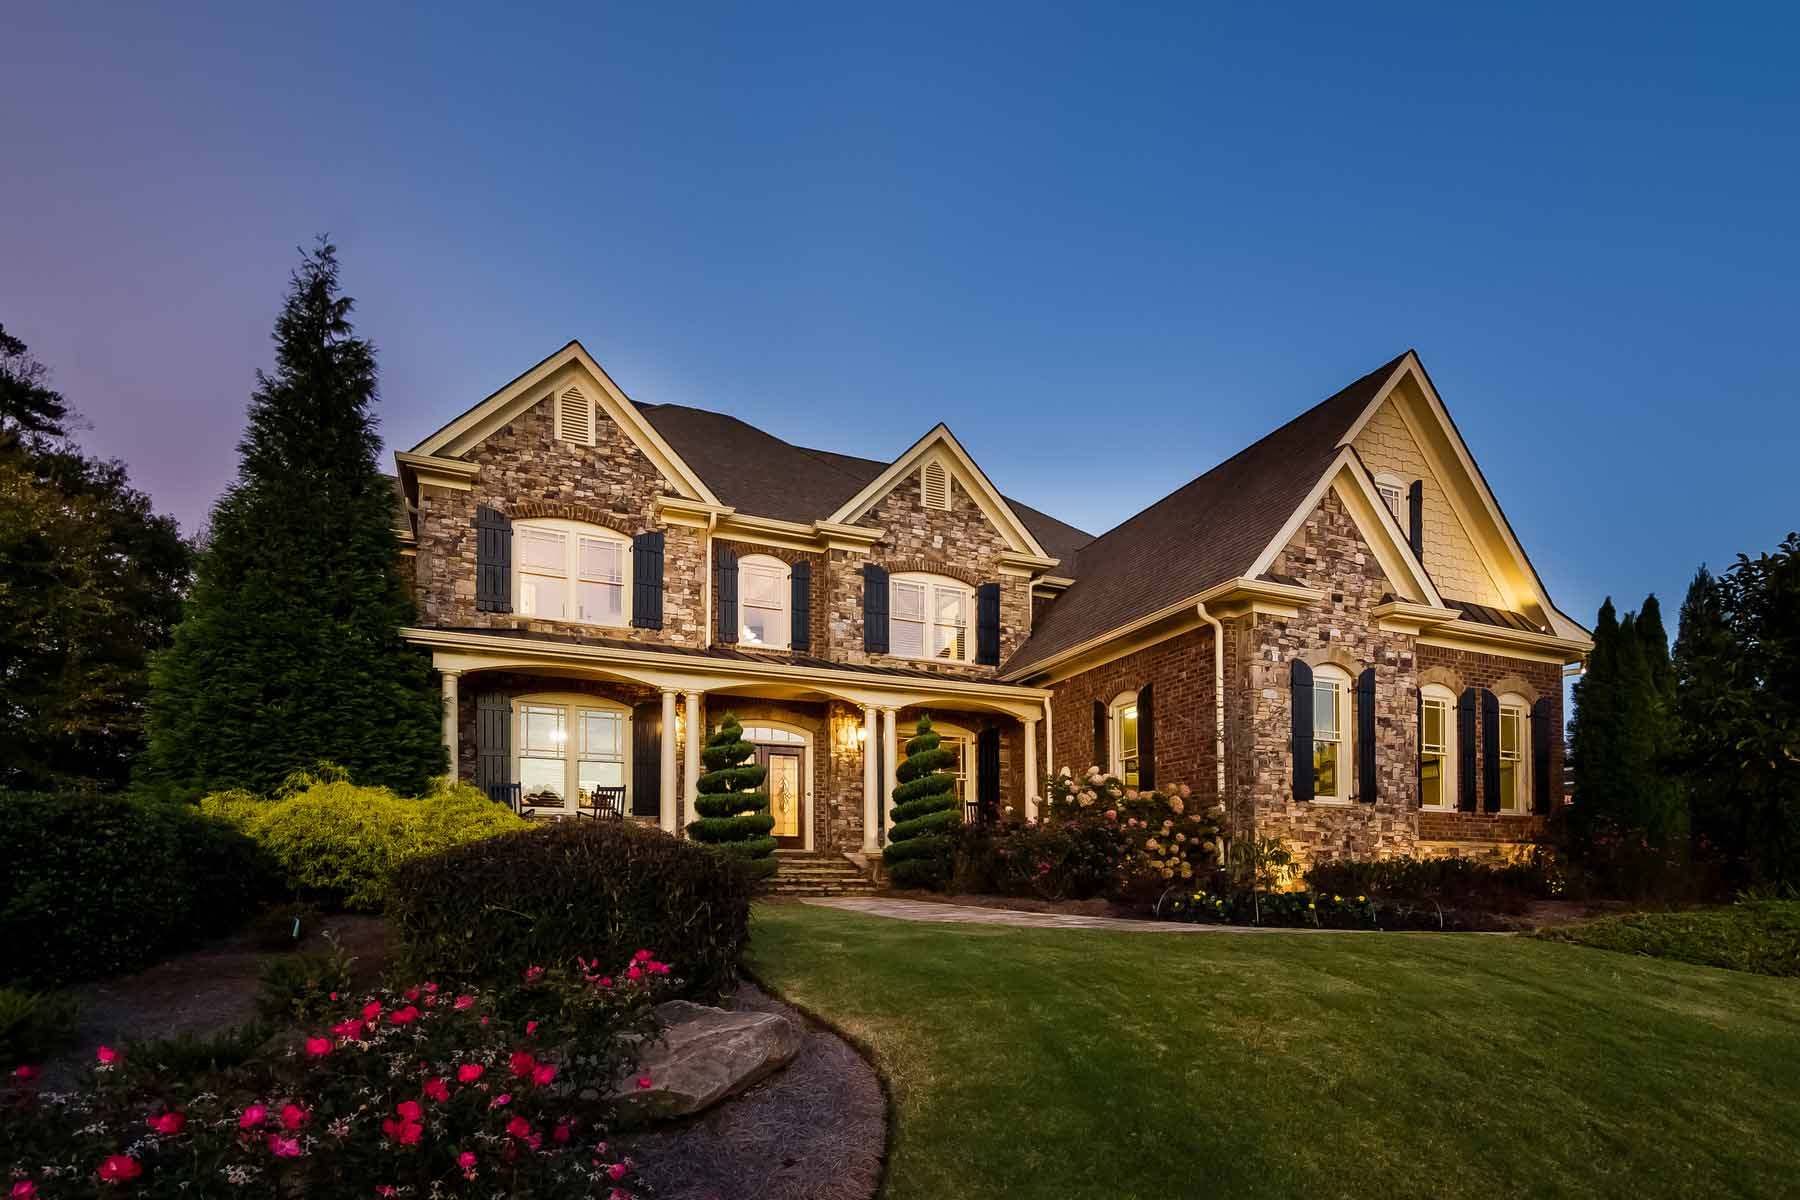 Homes for Sale in Roswell GA: Atlanta Suburbs Real Estate Trends